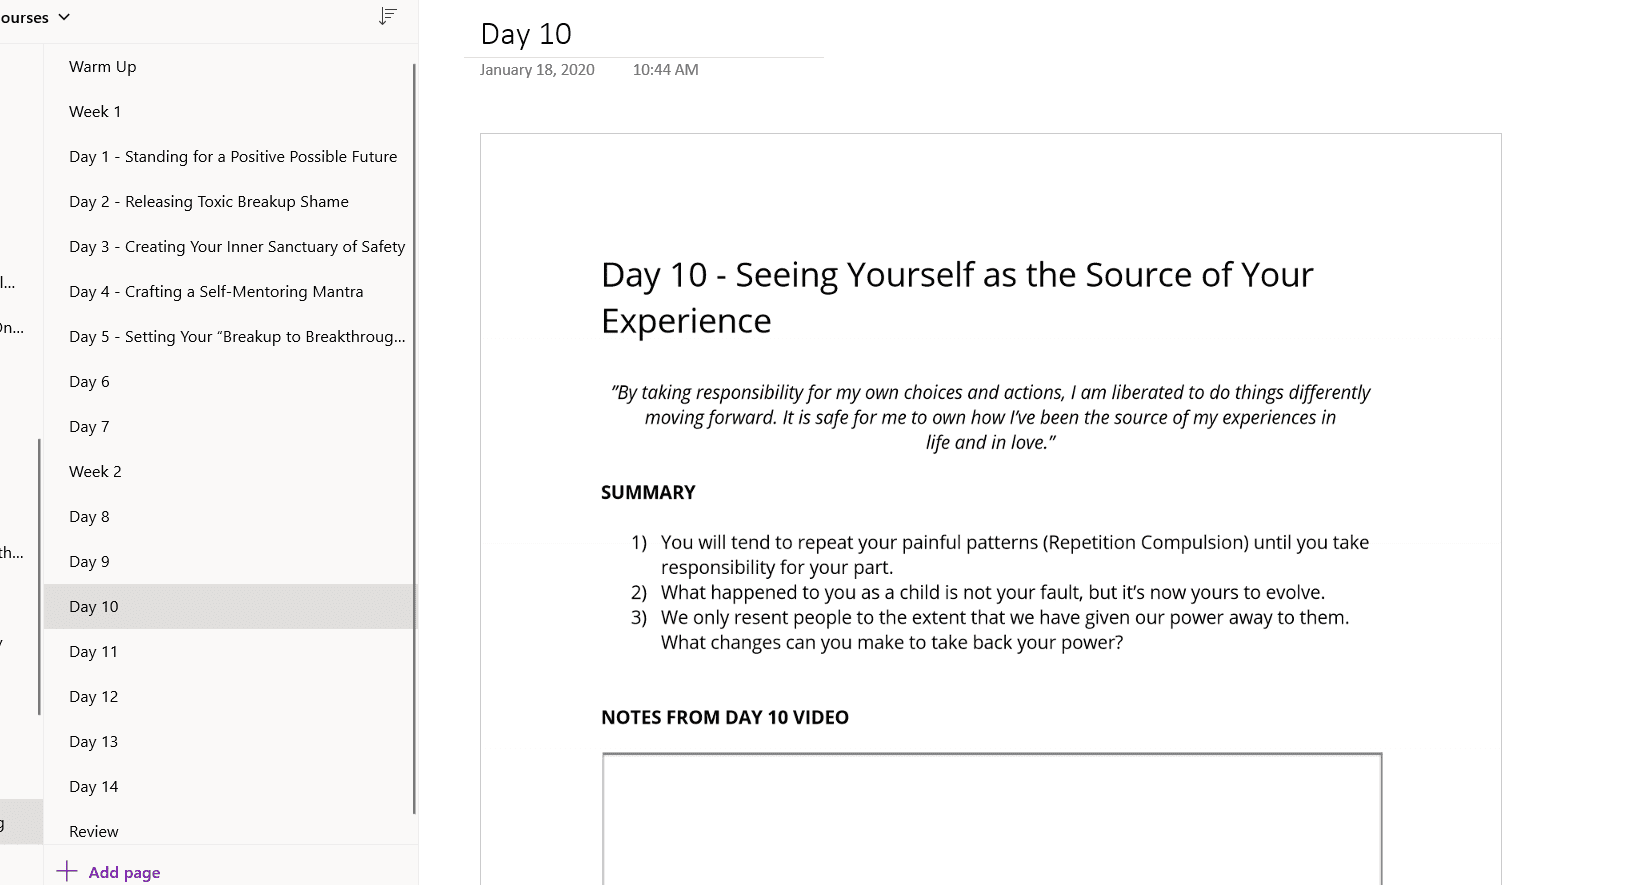 Day 10 copy and paste OneNote Mindvalley Quest